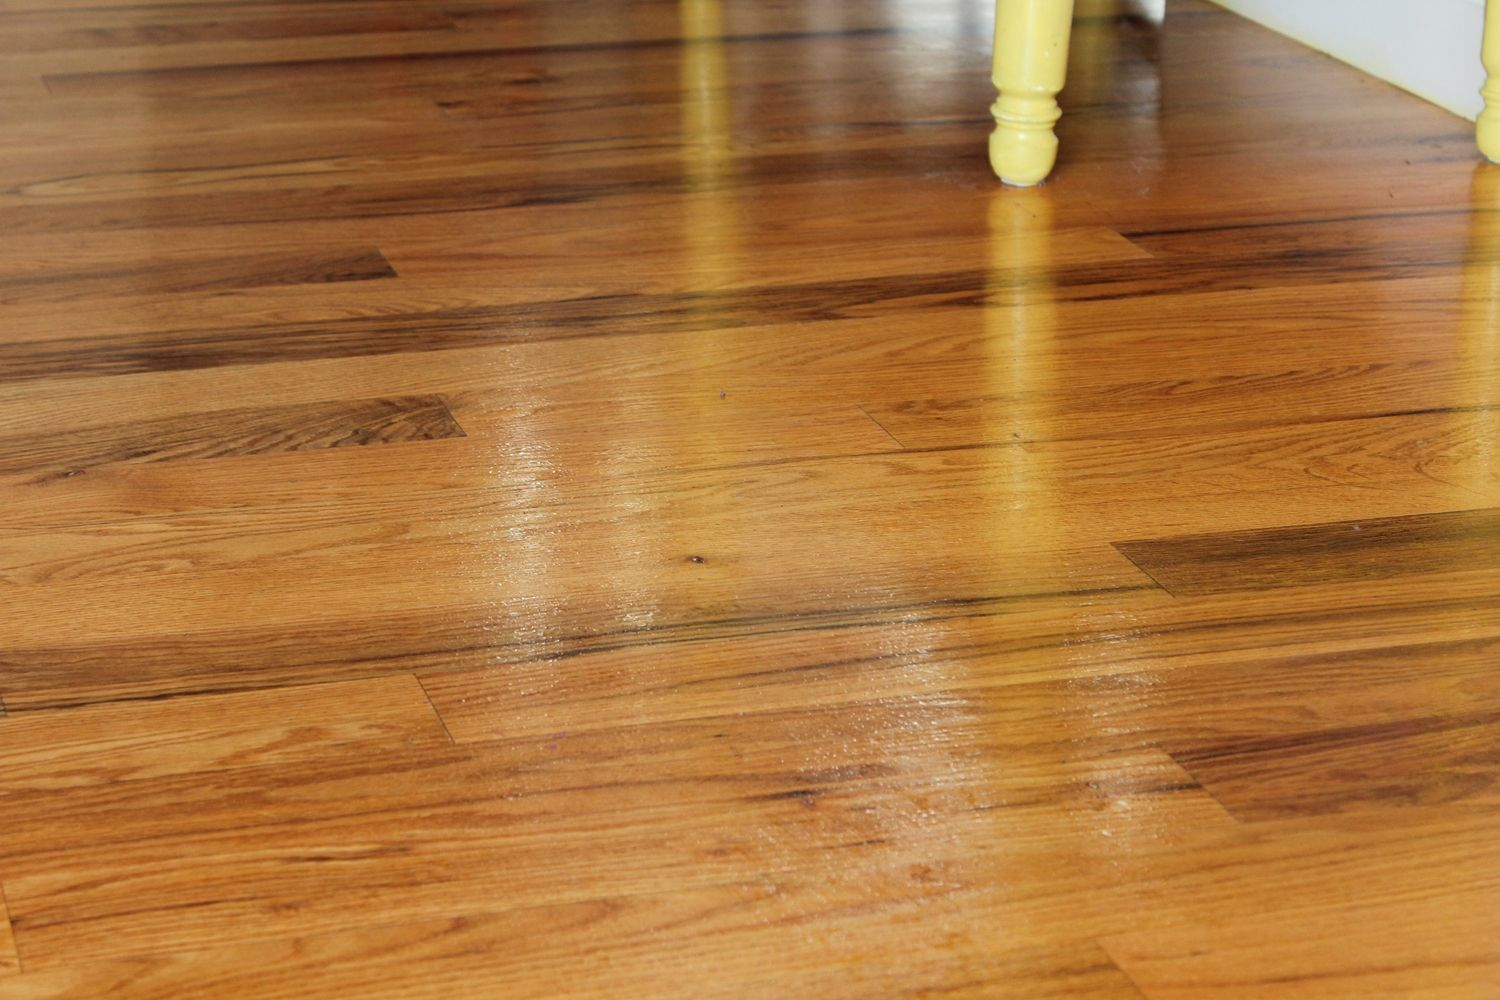 DIY Wood Floor Cleaner - let it dry